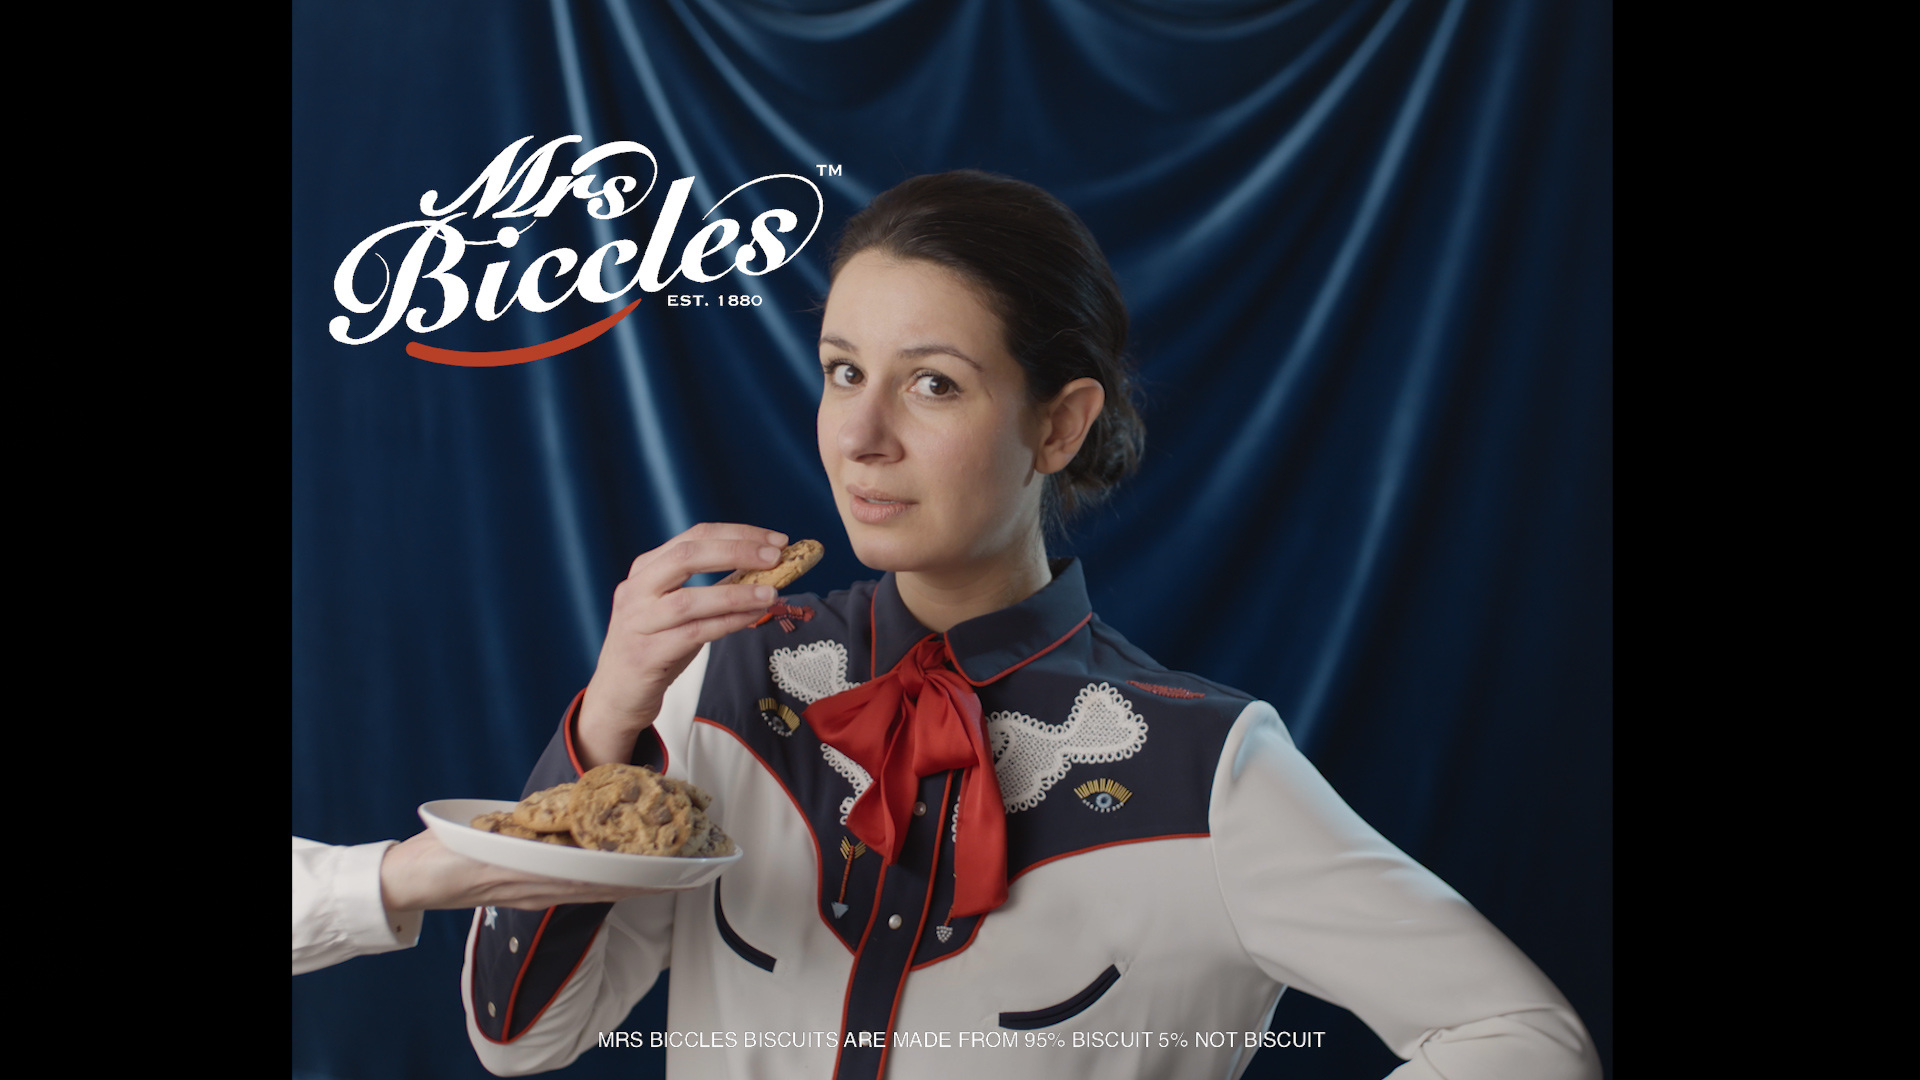 Mrs Biccles Biscuits